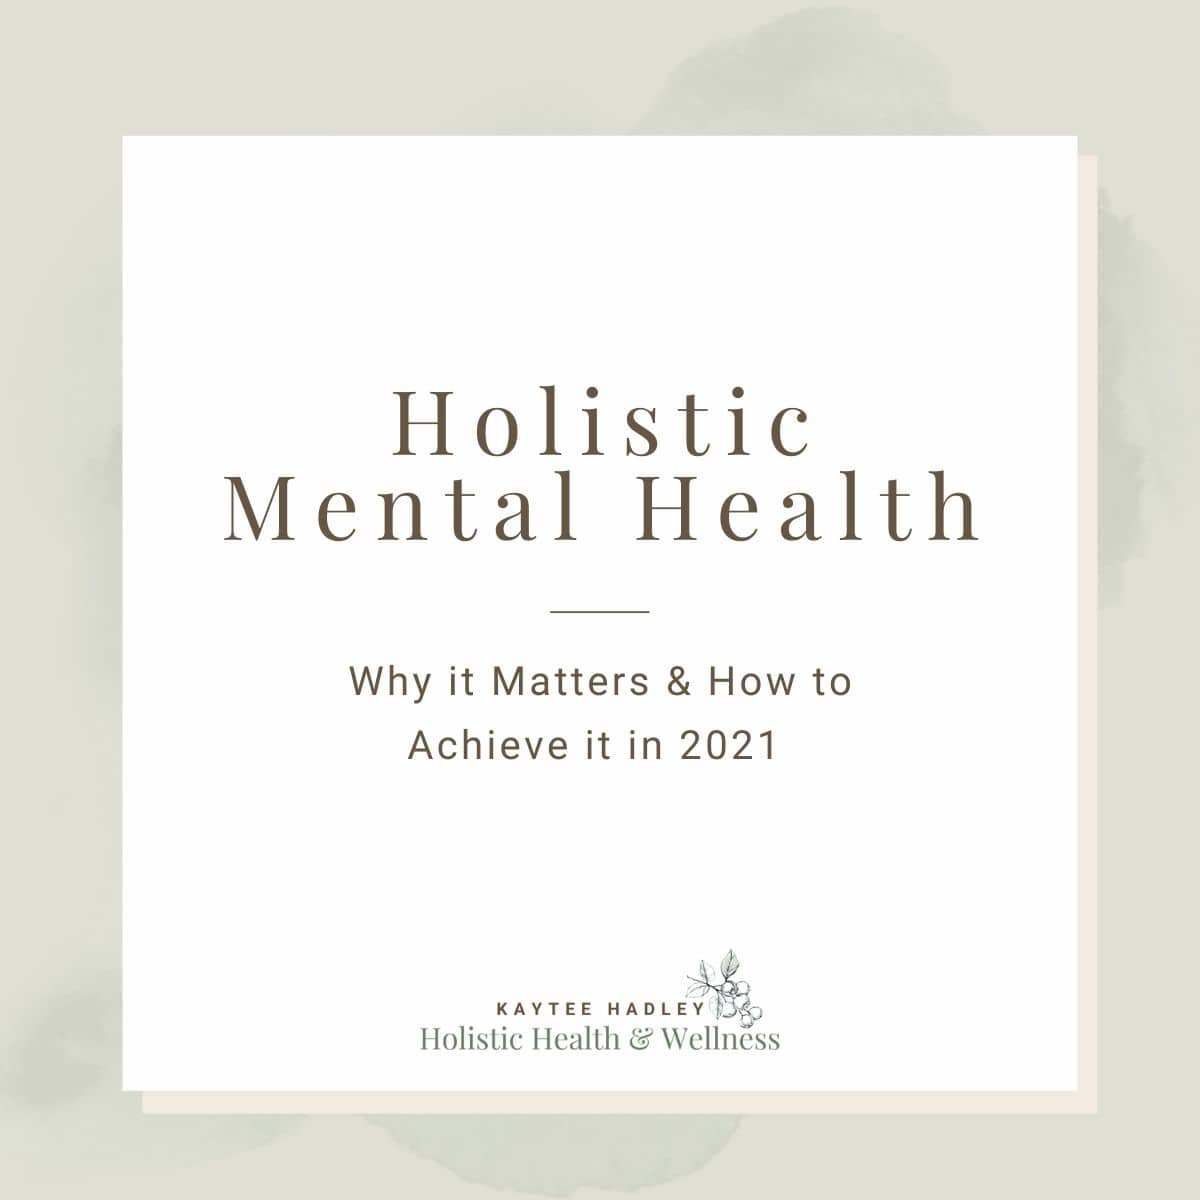 Holistic Mental Health: Why it Matters & How to Achieve it in 2021